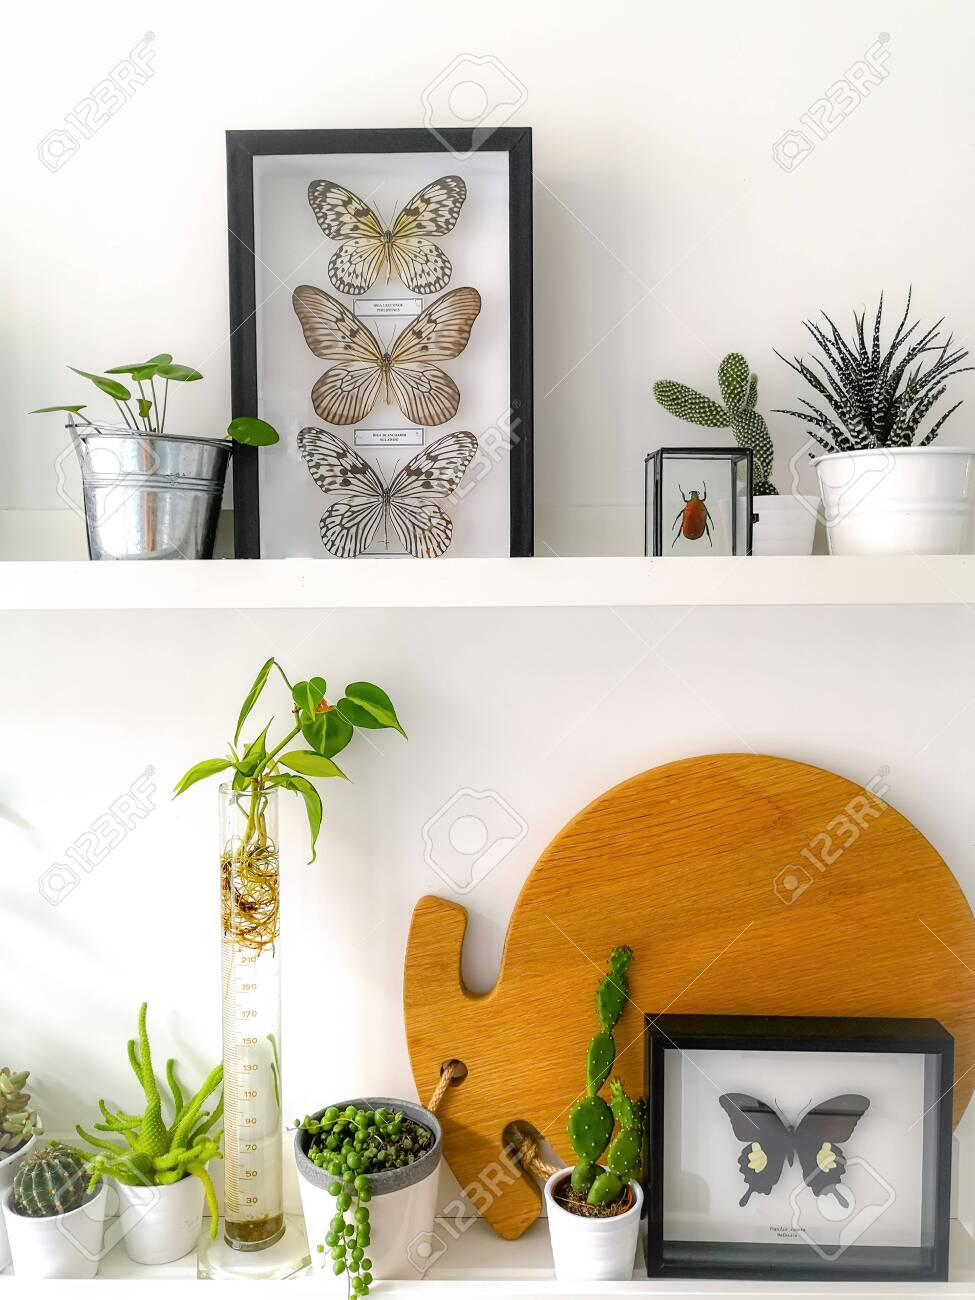 White hanging shelves with numerous plants and framed taxidermy insect art such as butterflies and a colorful beetle - 127147149